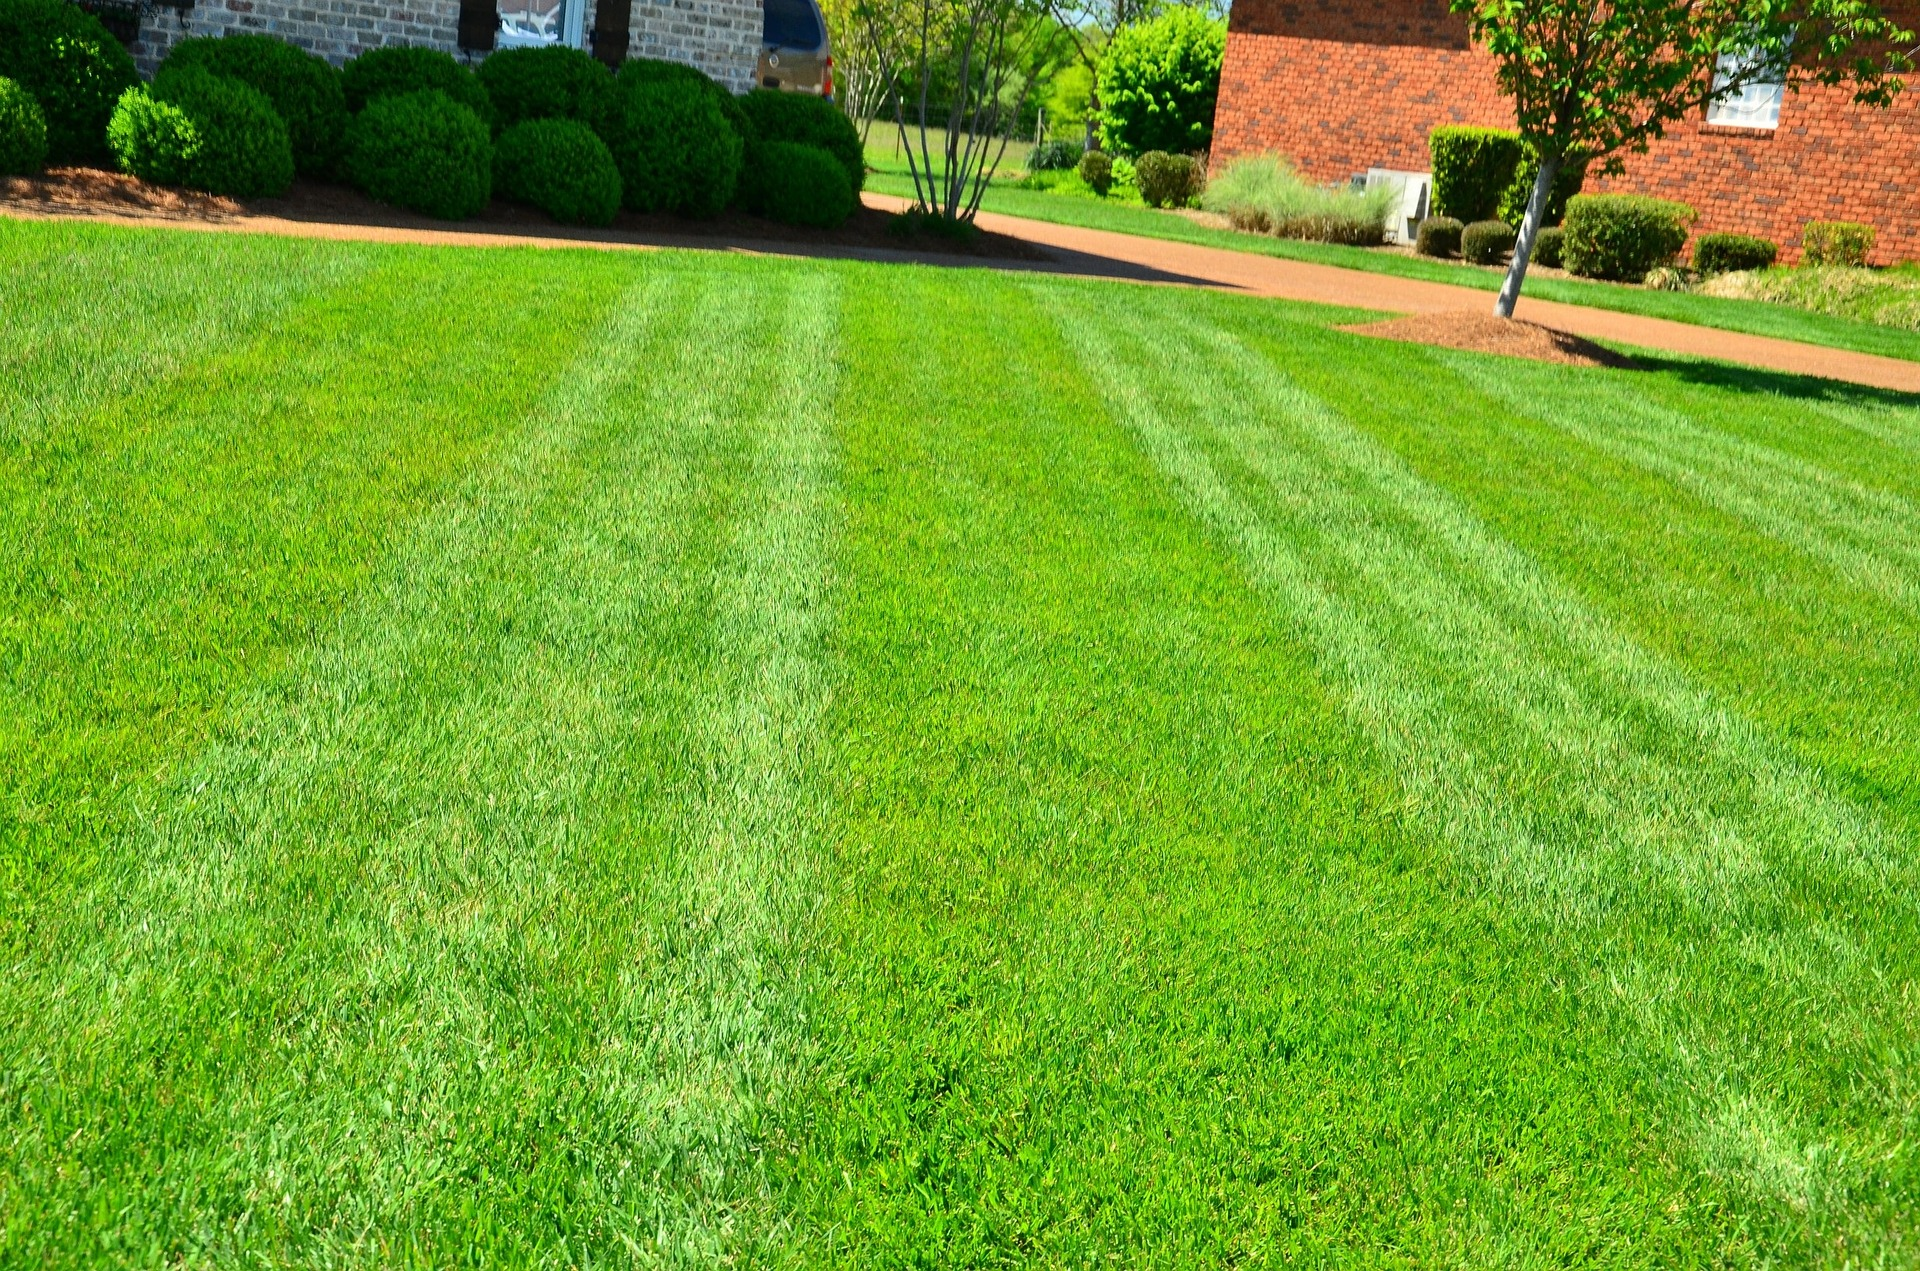 Spring Lawn Maintenance Made Simple